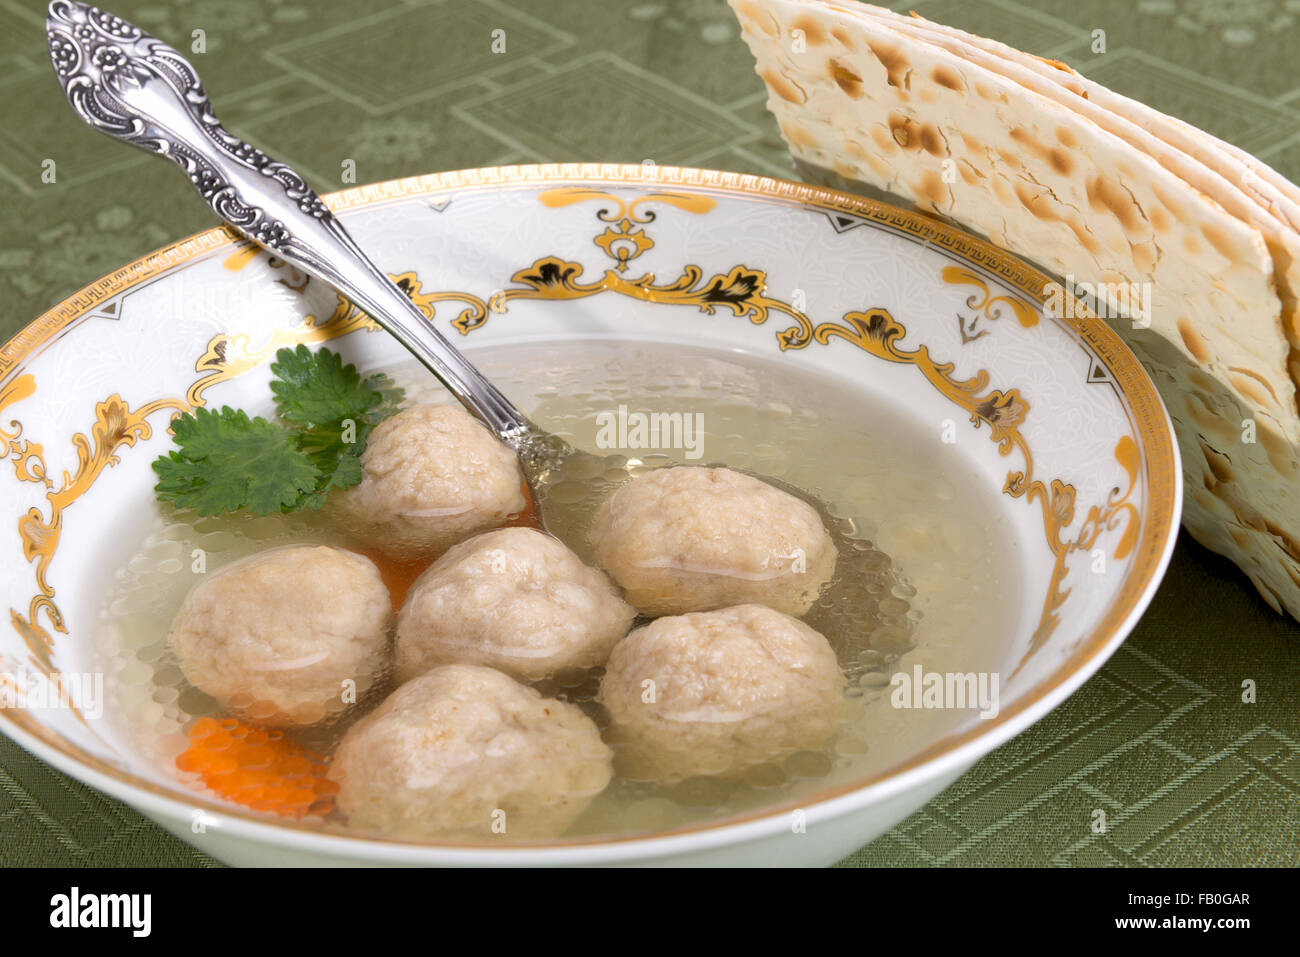 A traditional Ashkenazi Jewish soup with bolls, made from a mixture of matzah meal, eggs, water, and fat, boiled - Stock Image